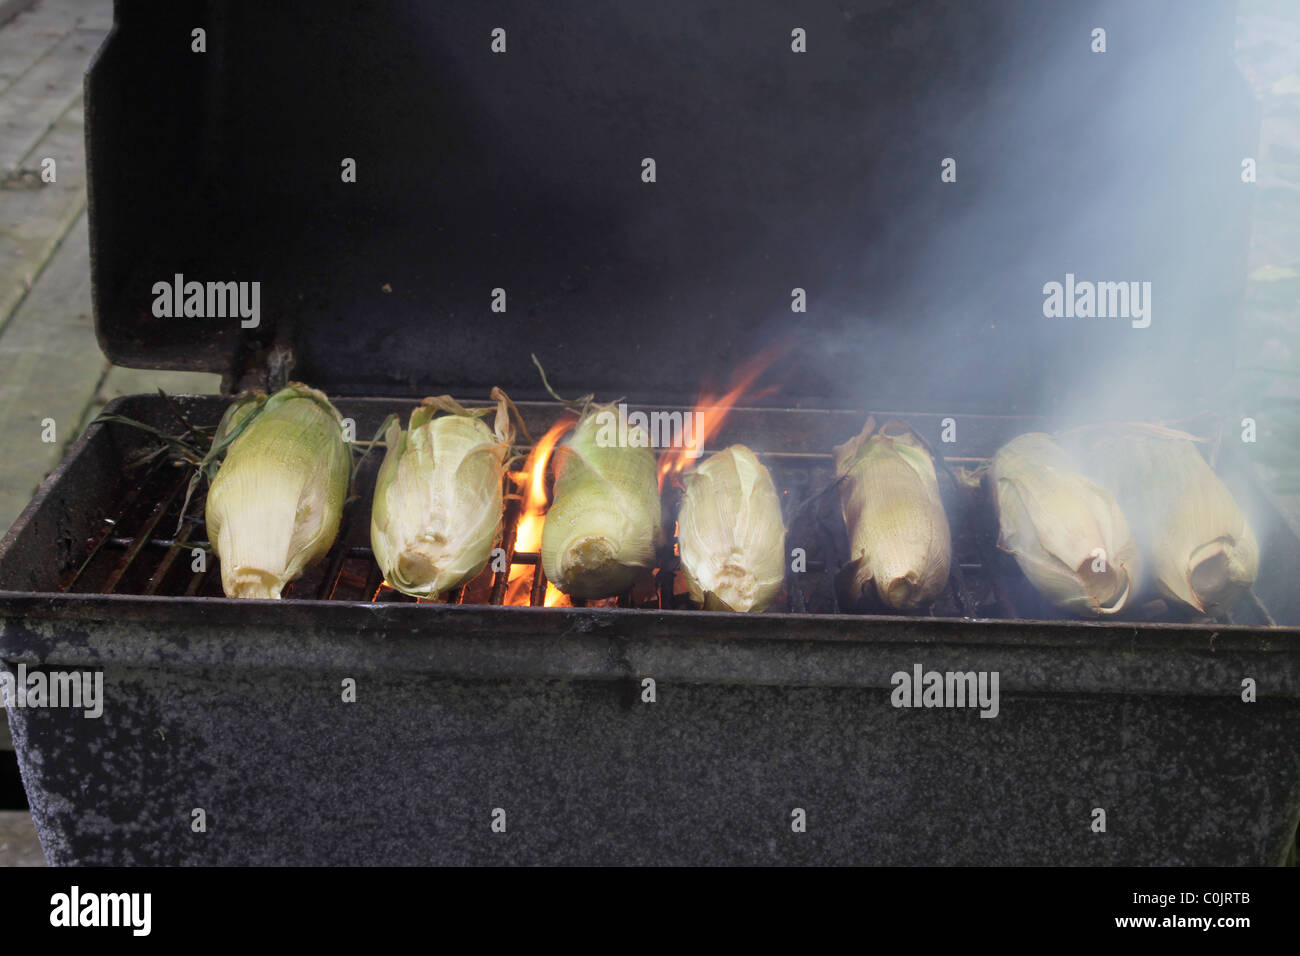 Summer treat, sweet corn ears roasting on the charcoal grill - Stock Image